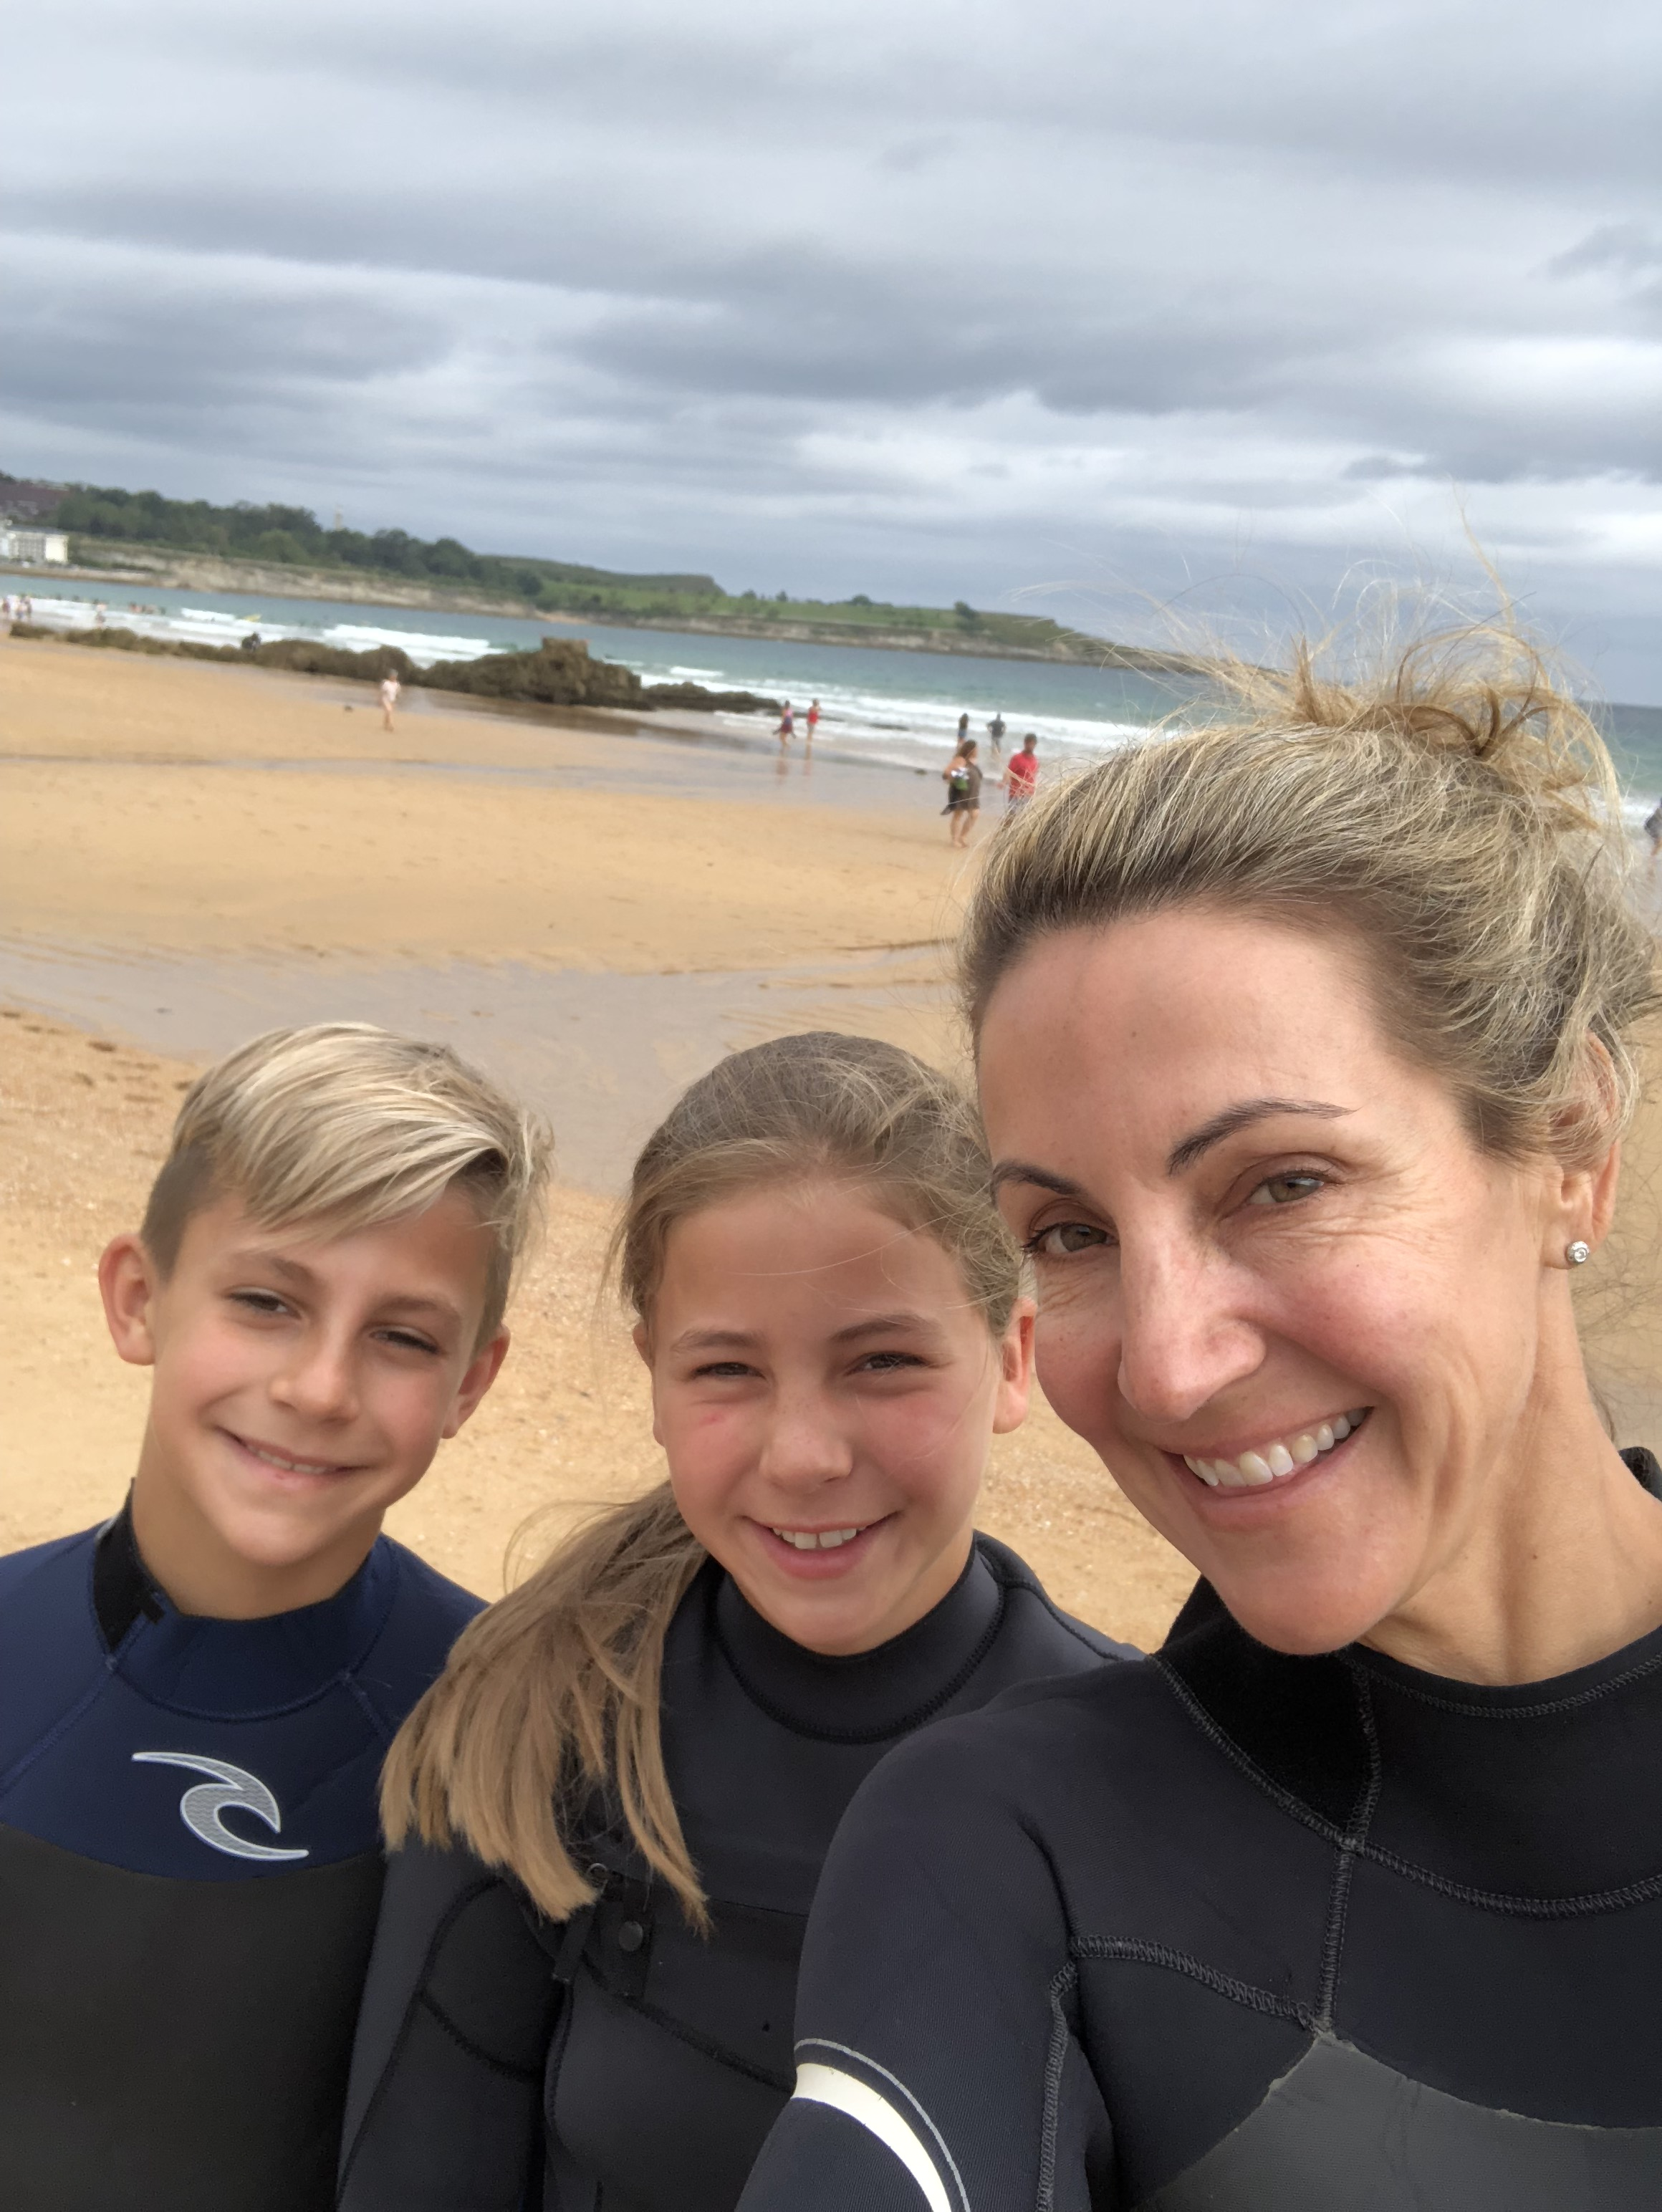 A family who surfs together... -